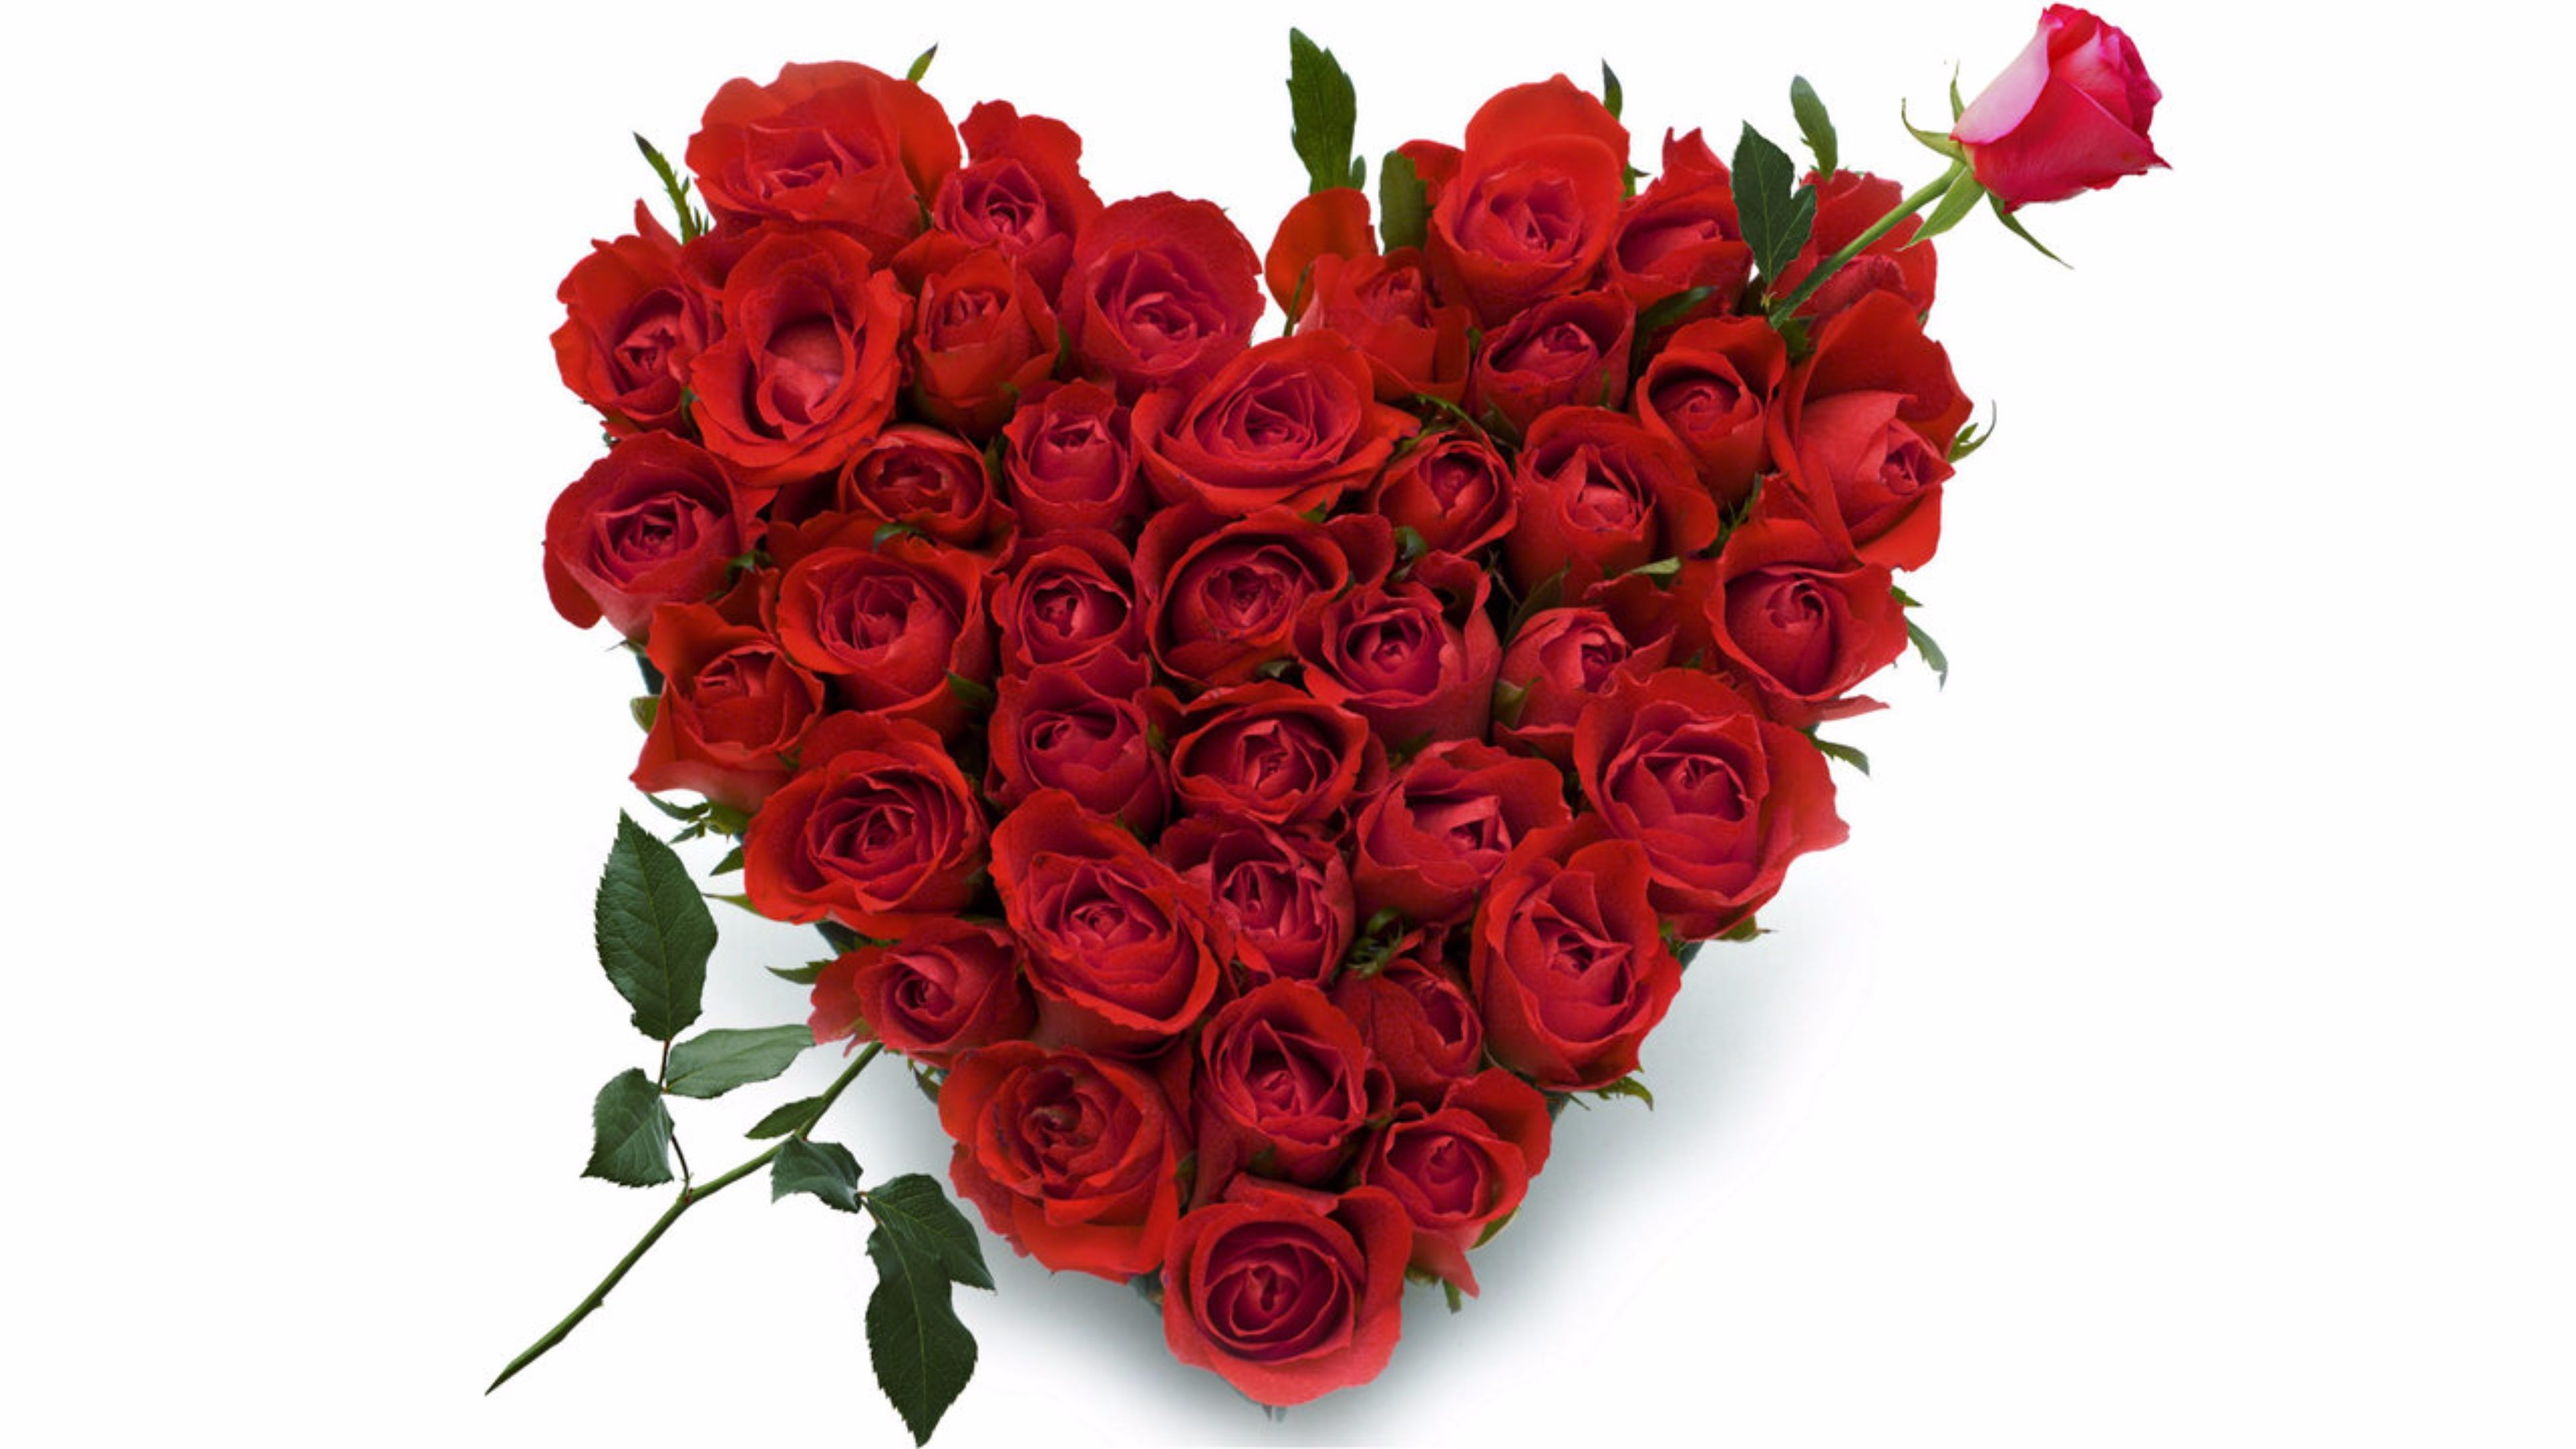 3840x2160 Our wide range of Red Rose Heart Shape Arrangement flowers buy online. a  variety of carnations on a heart-shaped Oasis base to create a special  Valentine's ...